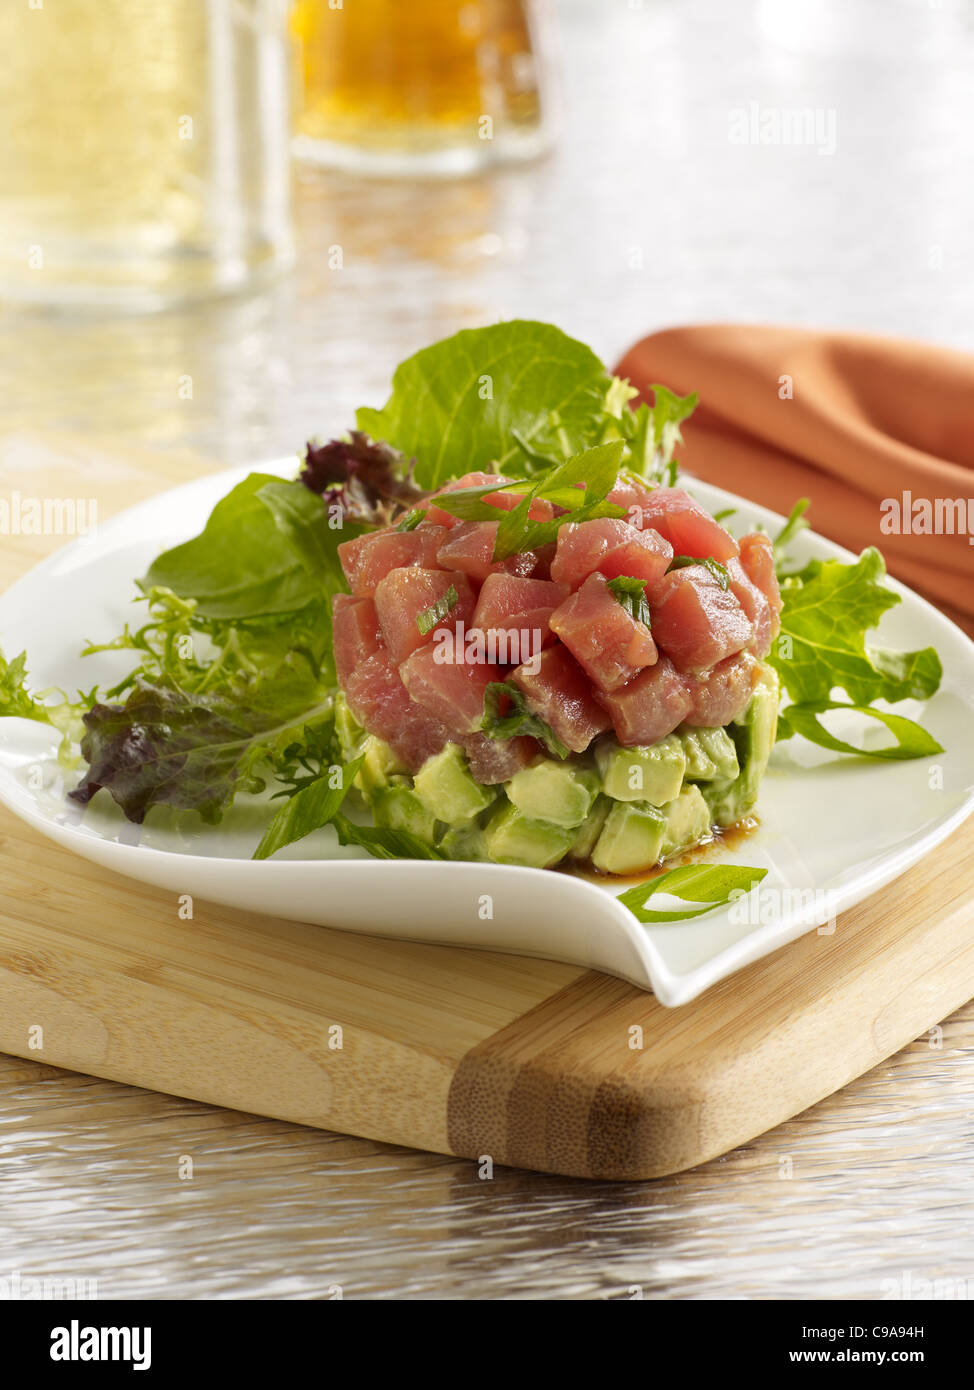 Tuna tartare salad with leafy greens and avocado on a white plate - Stock Image